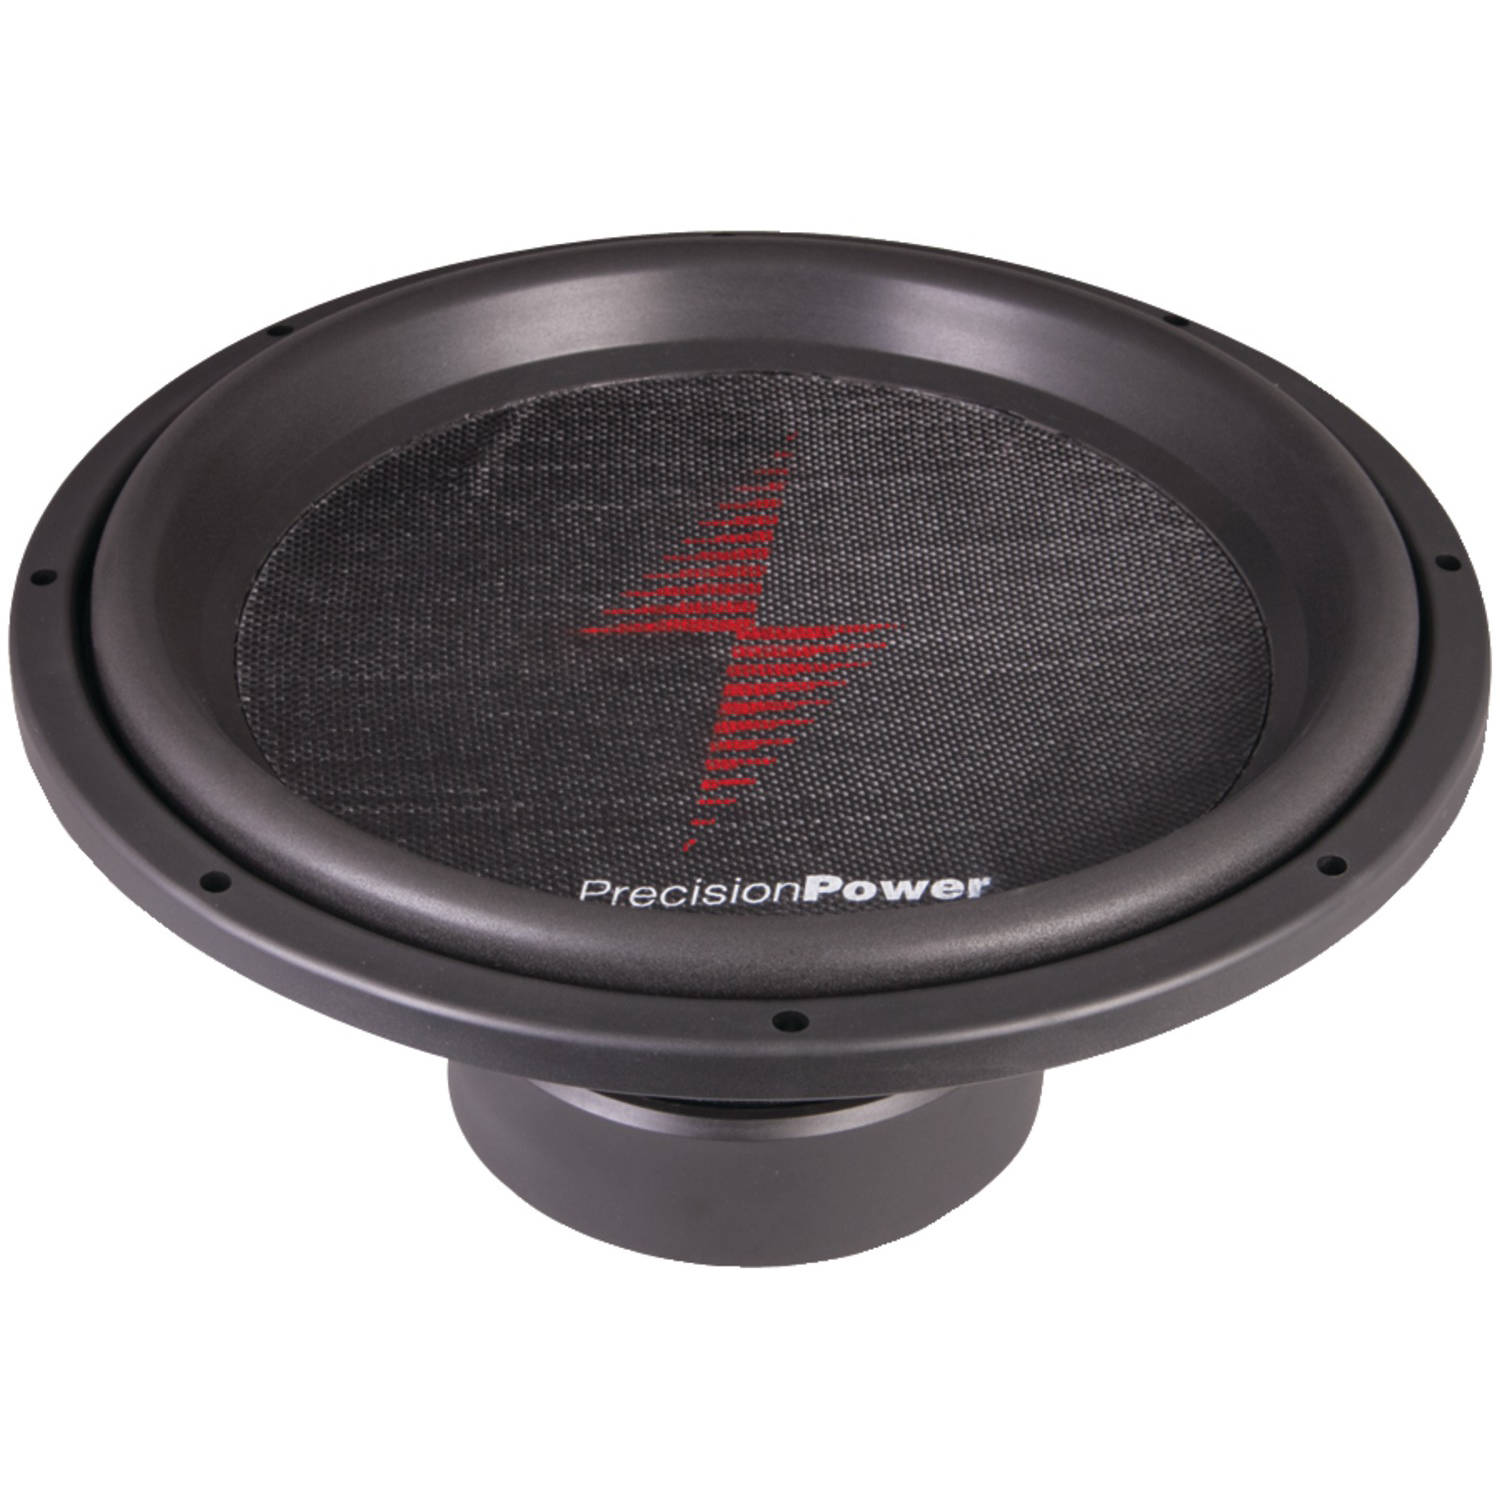 Precision Power PH.15 900W 15-Inch Phantom Series Dual 2 Ohm Subwoofer, Set of 1